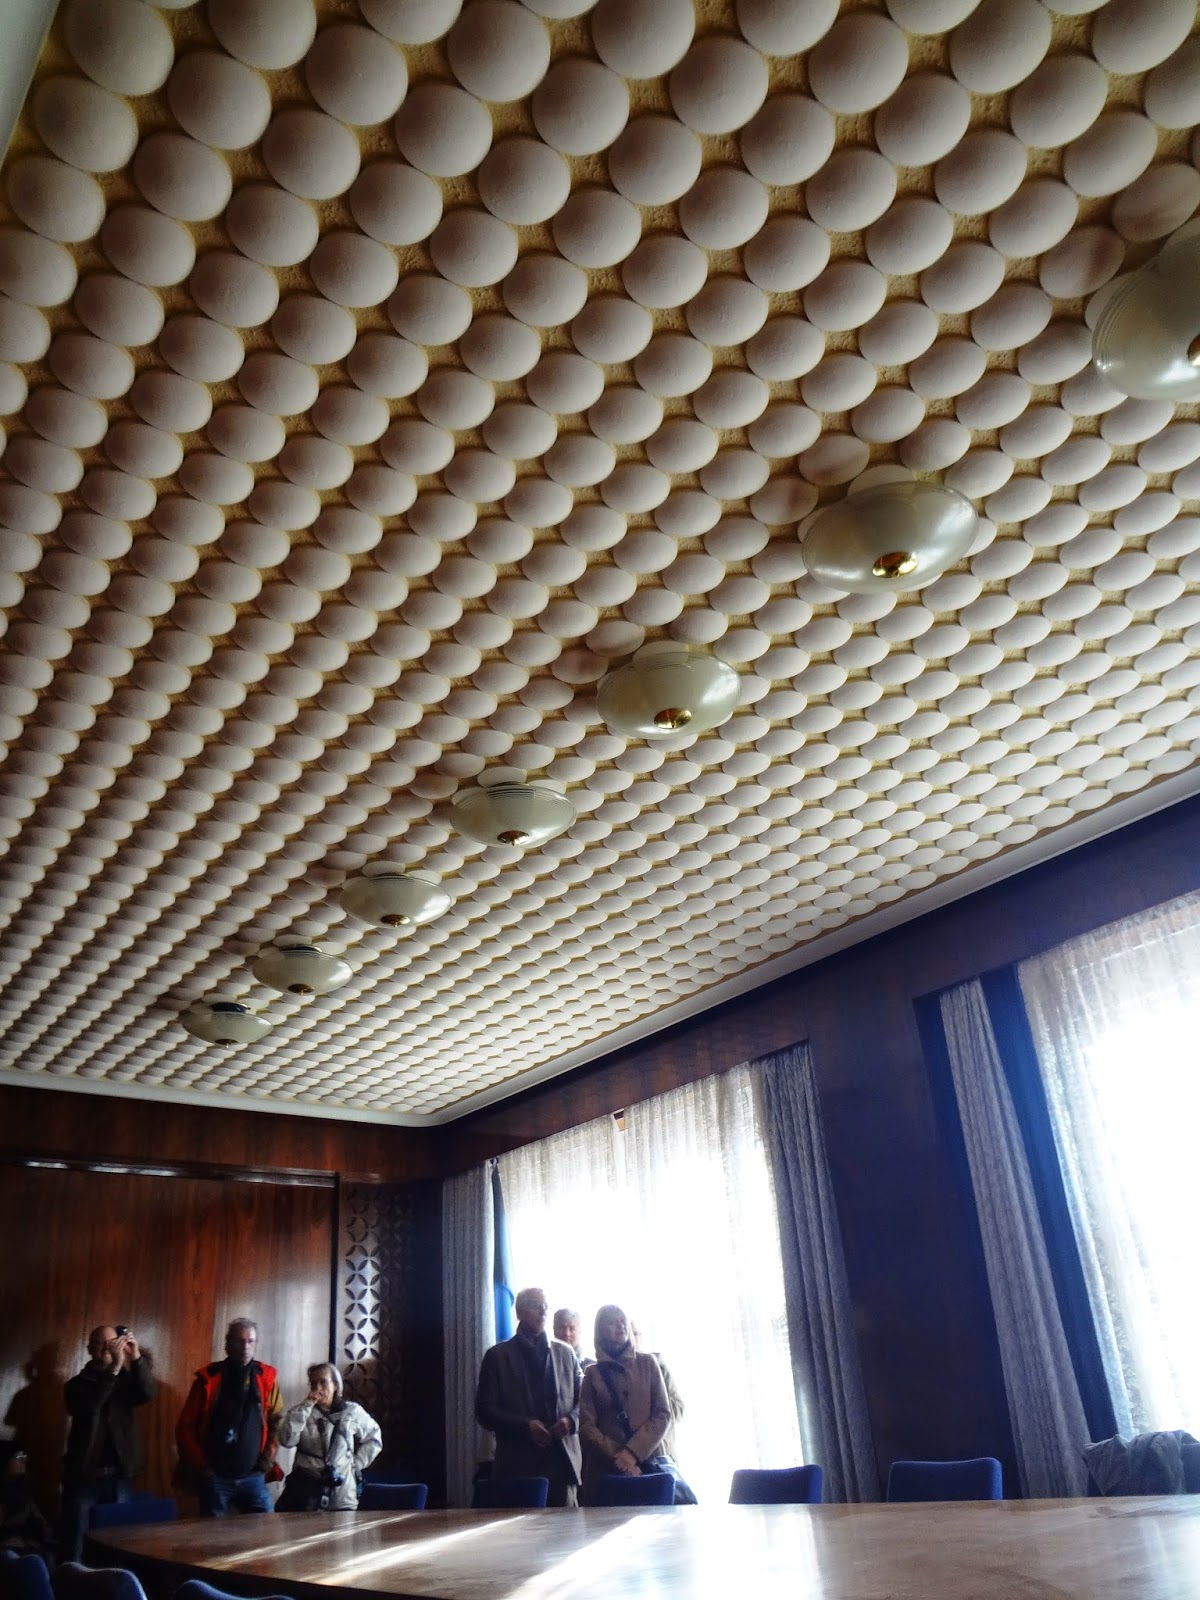 Tour the former DDR Radio Station